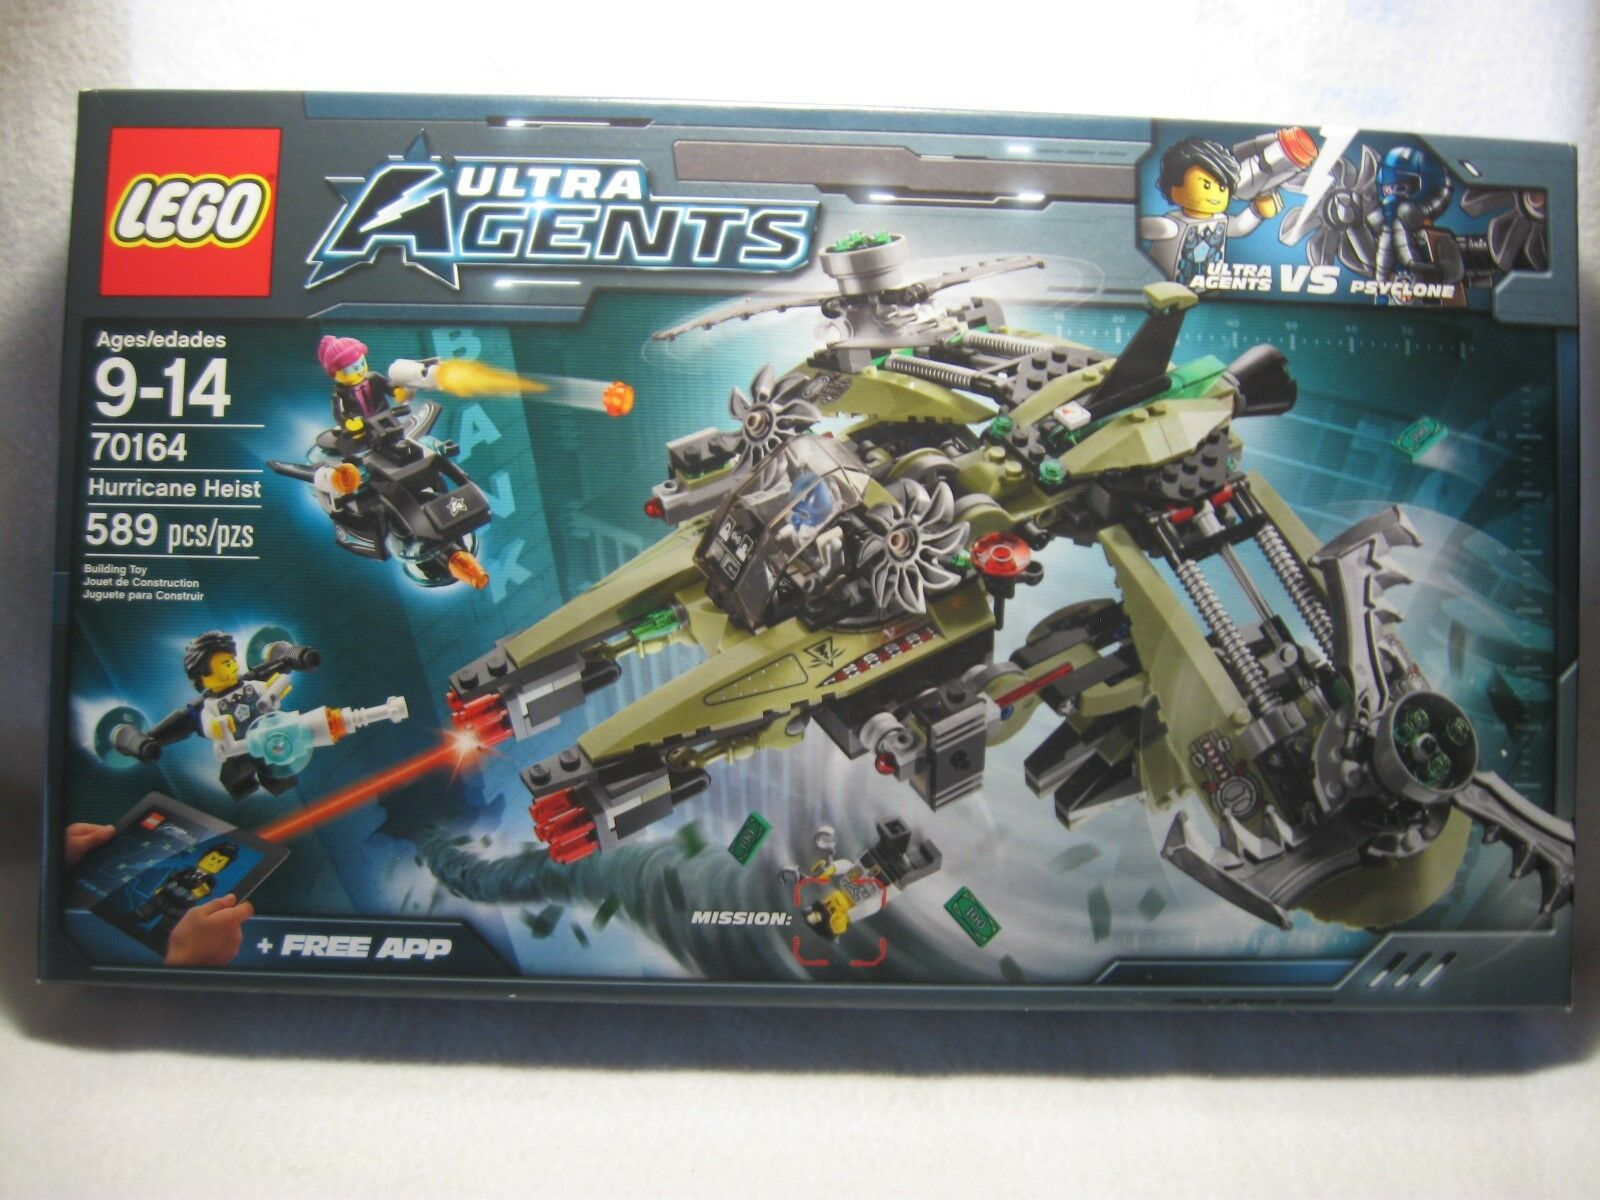 Lego Ultra Agents Agents Agents VS Psyclone Hurricane Heist 70164 Ages 9-14 New Sealed Box bdef58